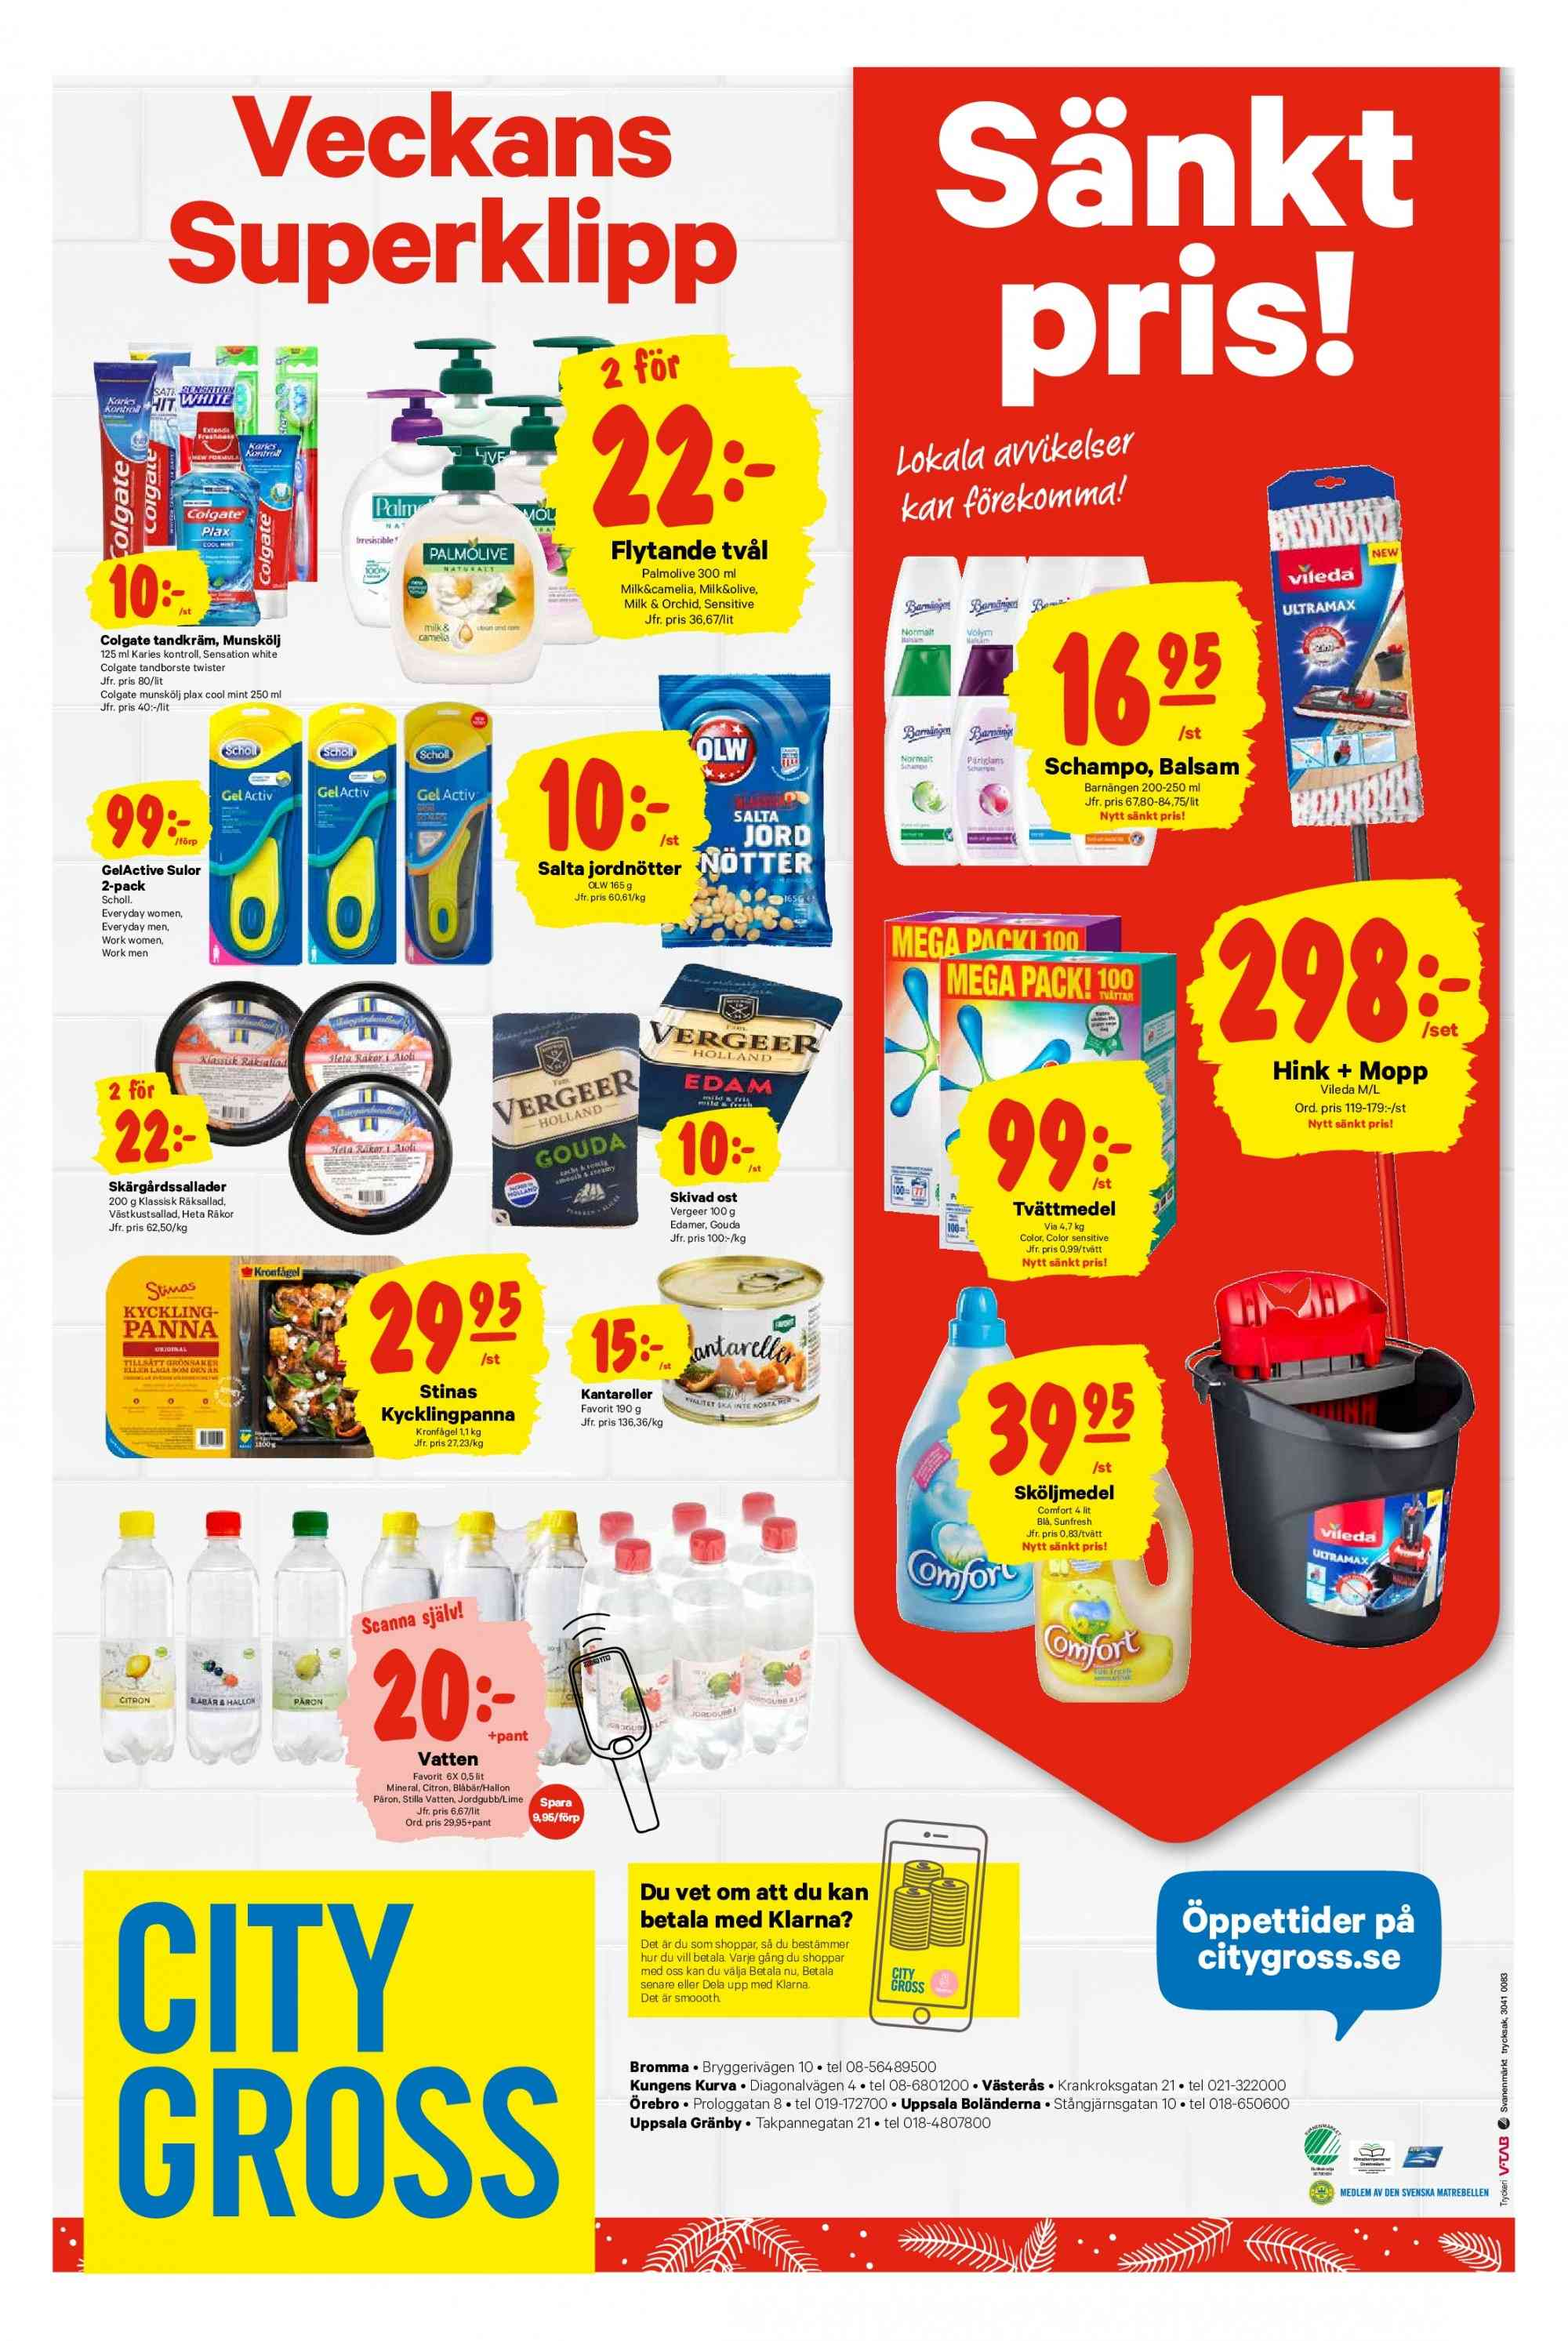 City Gross reklamblad - 10/12 2018 - 16/12 2018. Sida 12.